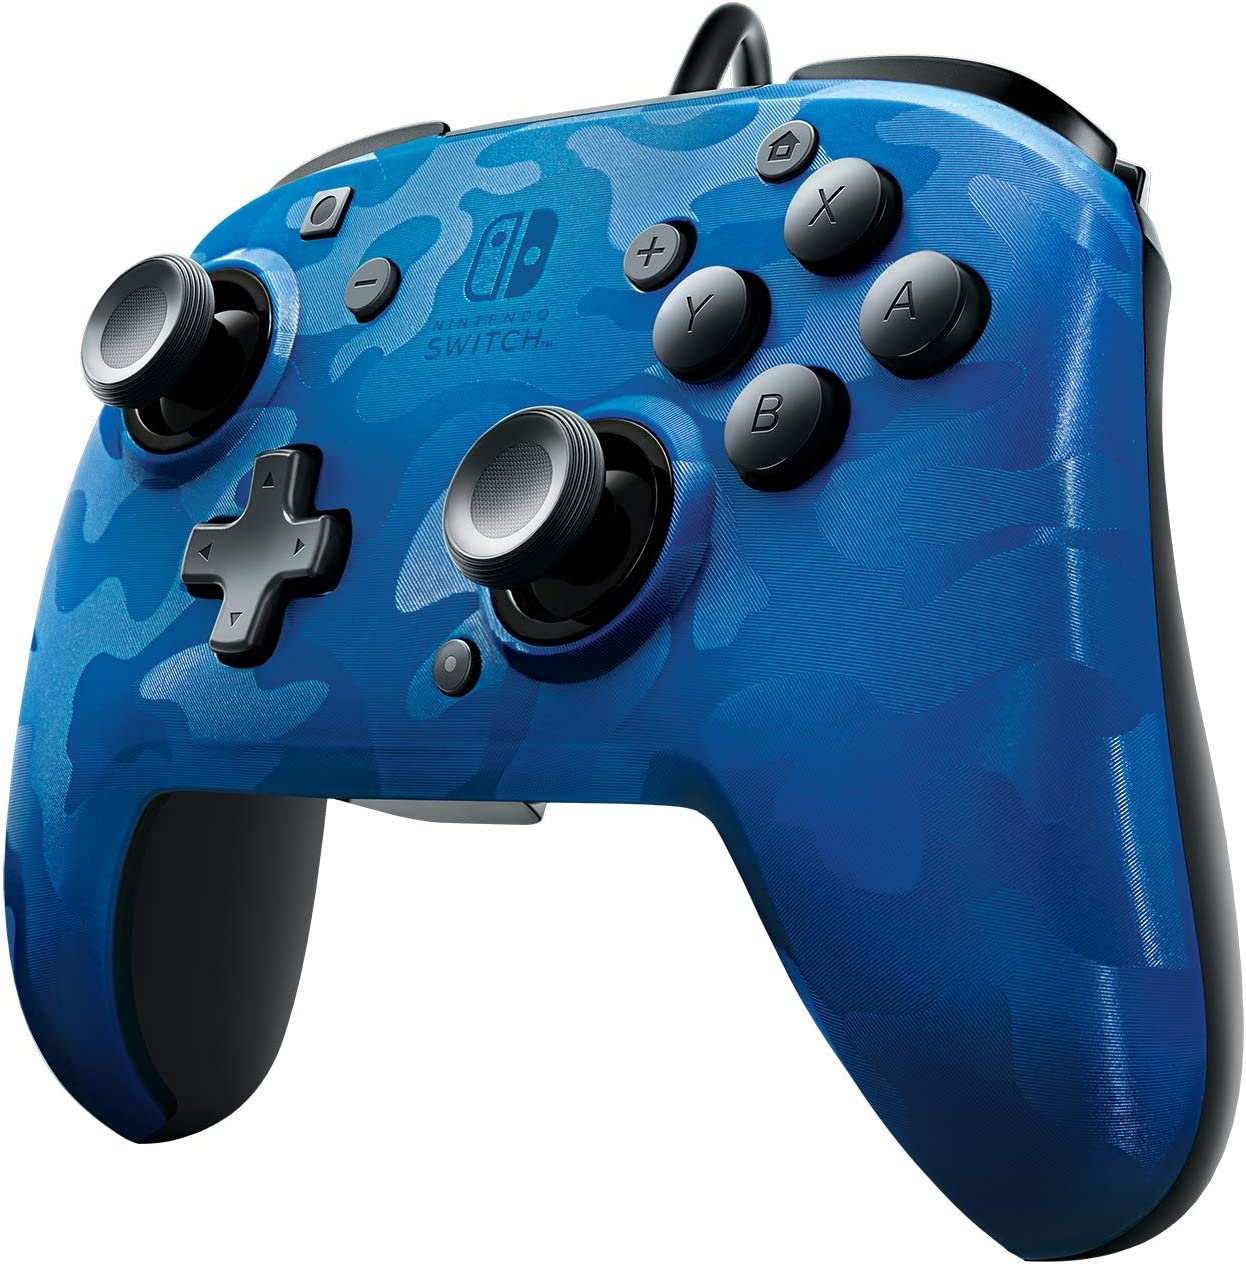 Pdp Camo Wired Controller For Xbox One Driver Windows 7: Amazon.com: PDP Nintendo Switch Blue Camo Faceoff Wired Pro rh:amazon.com,Design